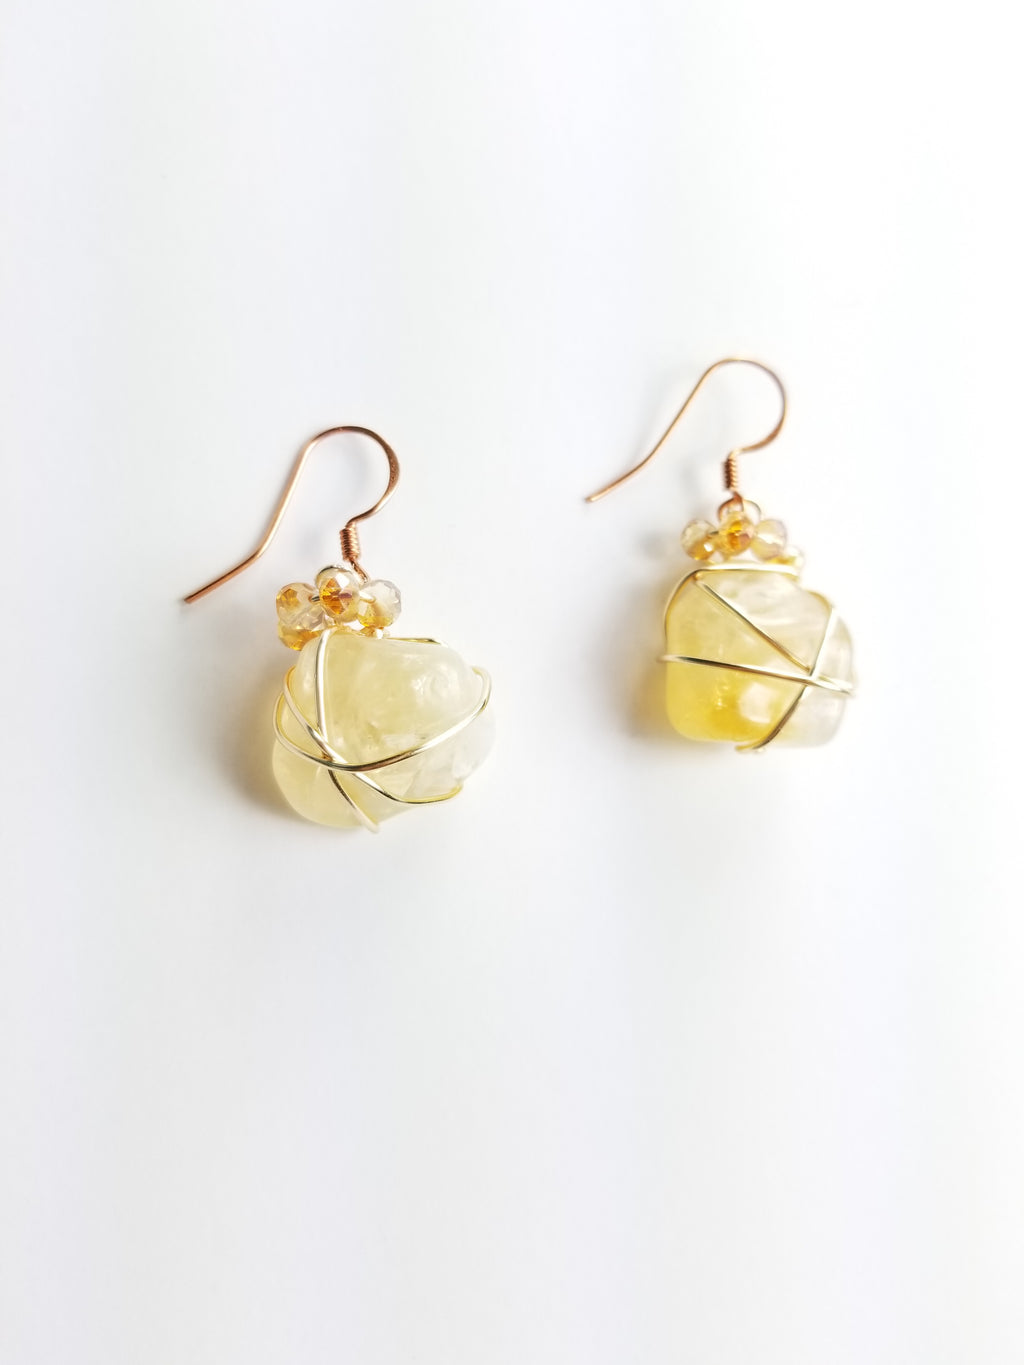 Citrine crystals, drop earrings~ one of a kind crystal jewelry